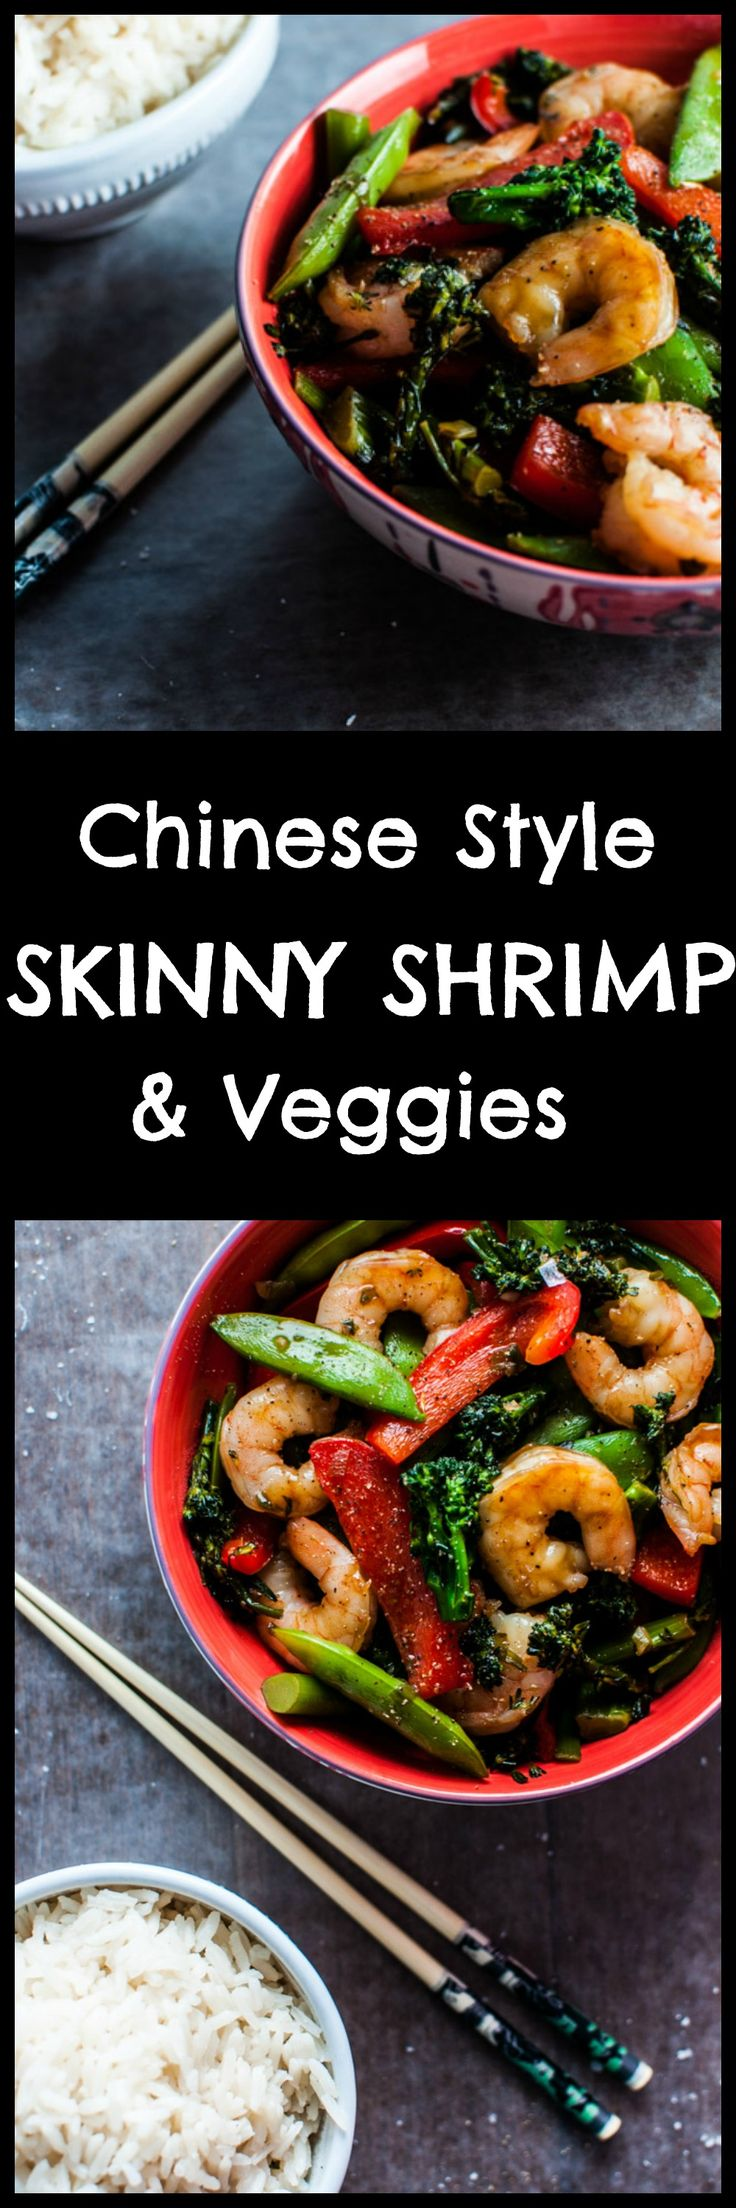 This Chinese style skinny shrimp and vegetables dish is ready in under half an hour and is packed with flavor!